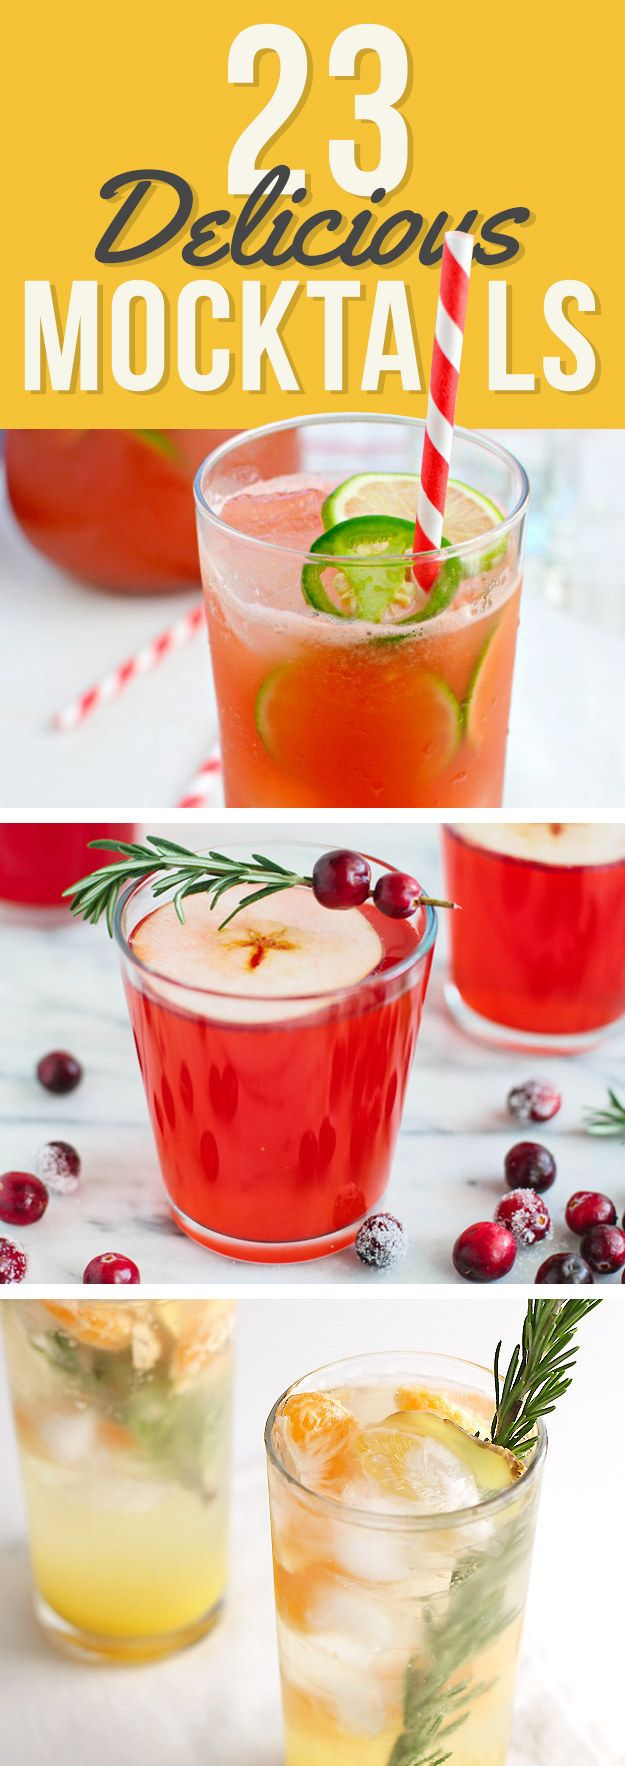 23 Delicious Non-Alcoholic Cocktails To Drink Instead Of Booze. For the non-drinkers at the wedding.....